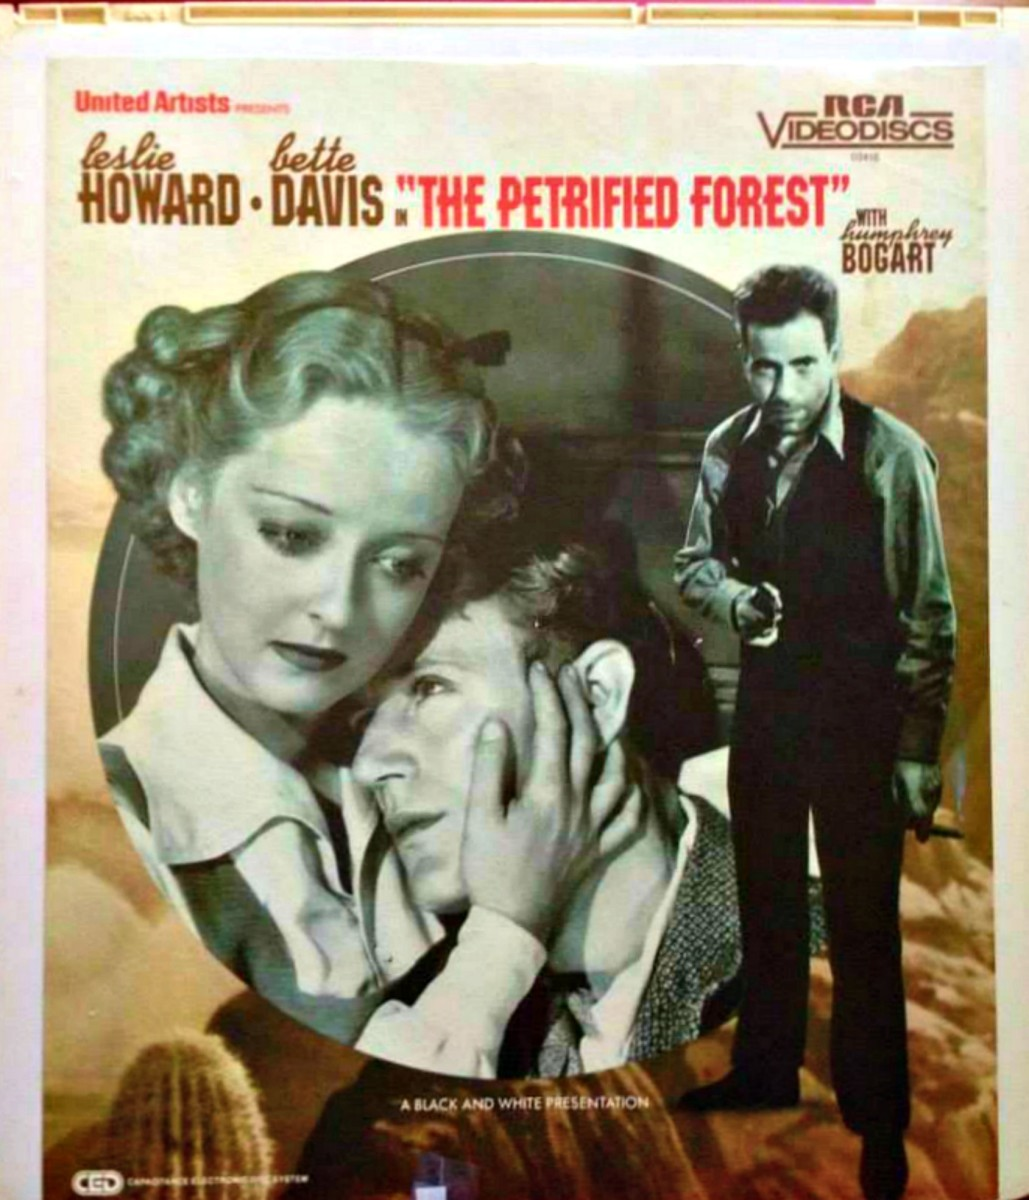 The Petrified Forest, RCA SelectaVision CED Video Disc  ...  Leslie Howard, as Alan Squier,  Bette Davis, as Gabrielle Maple, and  Humphrey Bogart, as Duke Mantee.  A waitress, a hobo and a bank robber get mixed up at a lonely diner in the desert.